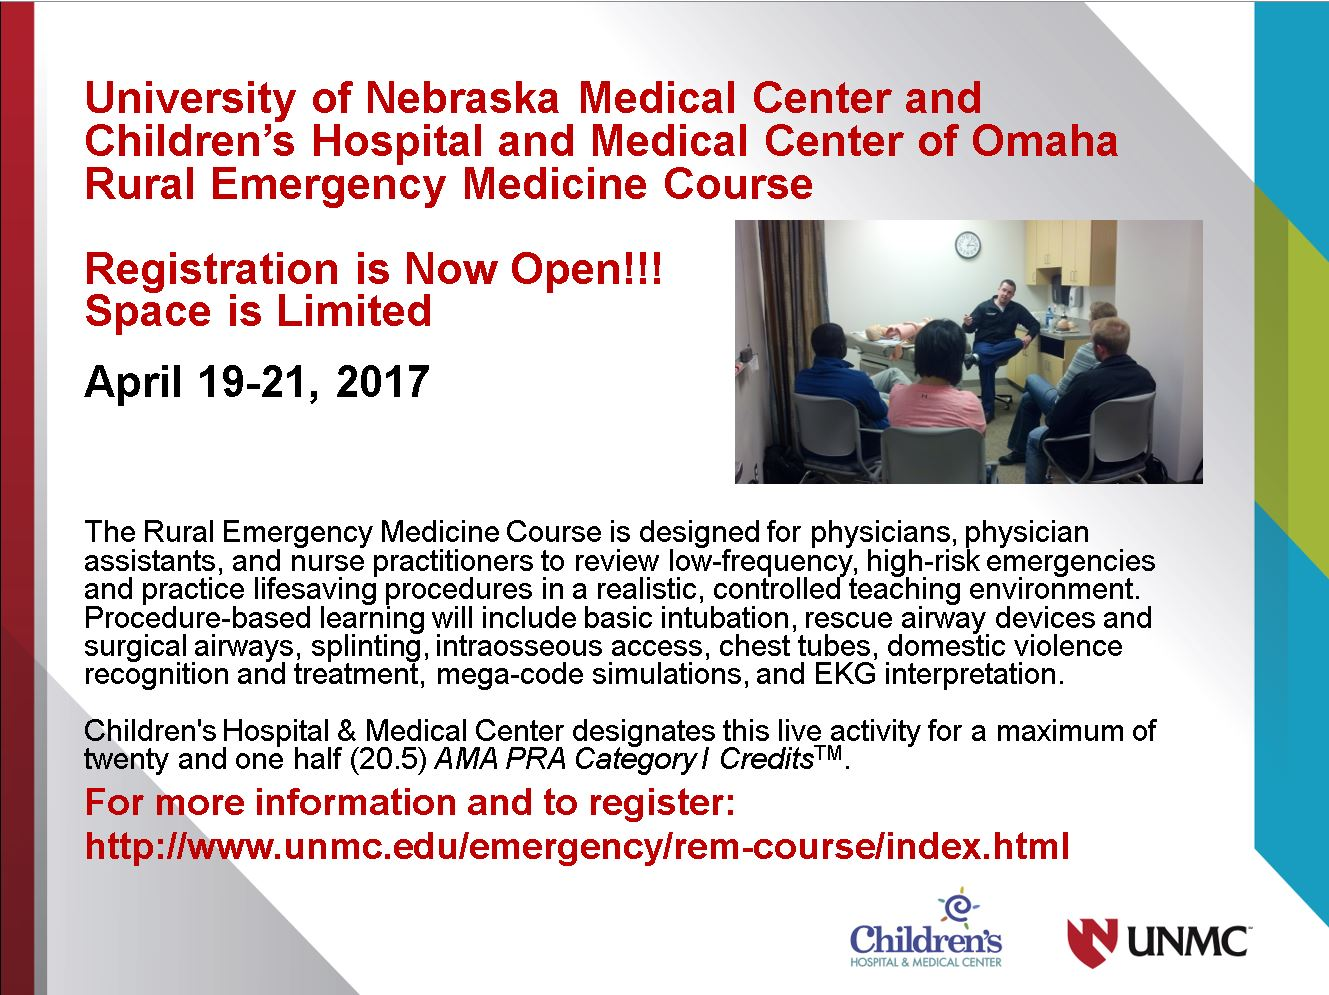 Click the box for more information on this Emergency Medicine Course from UNMC